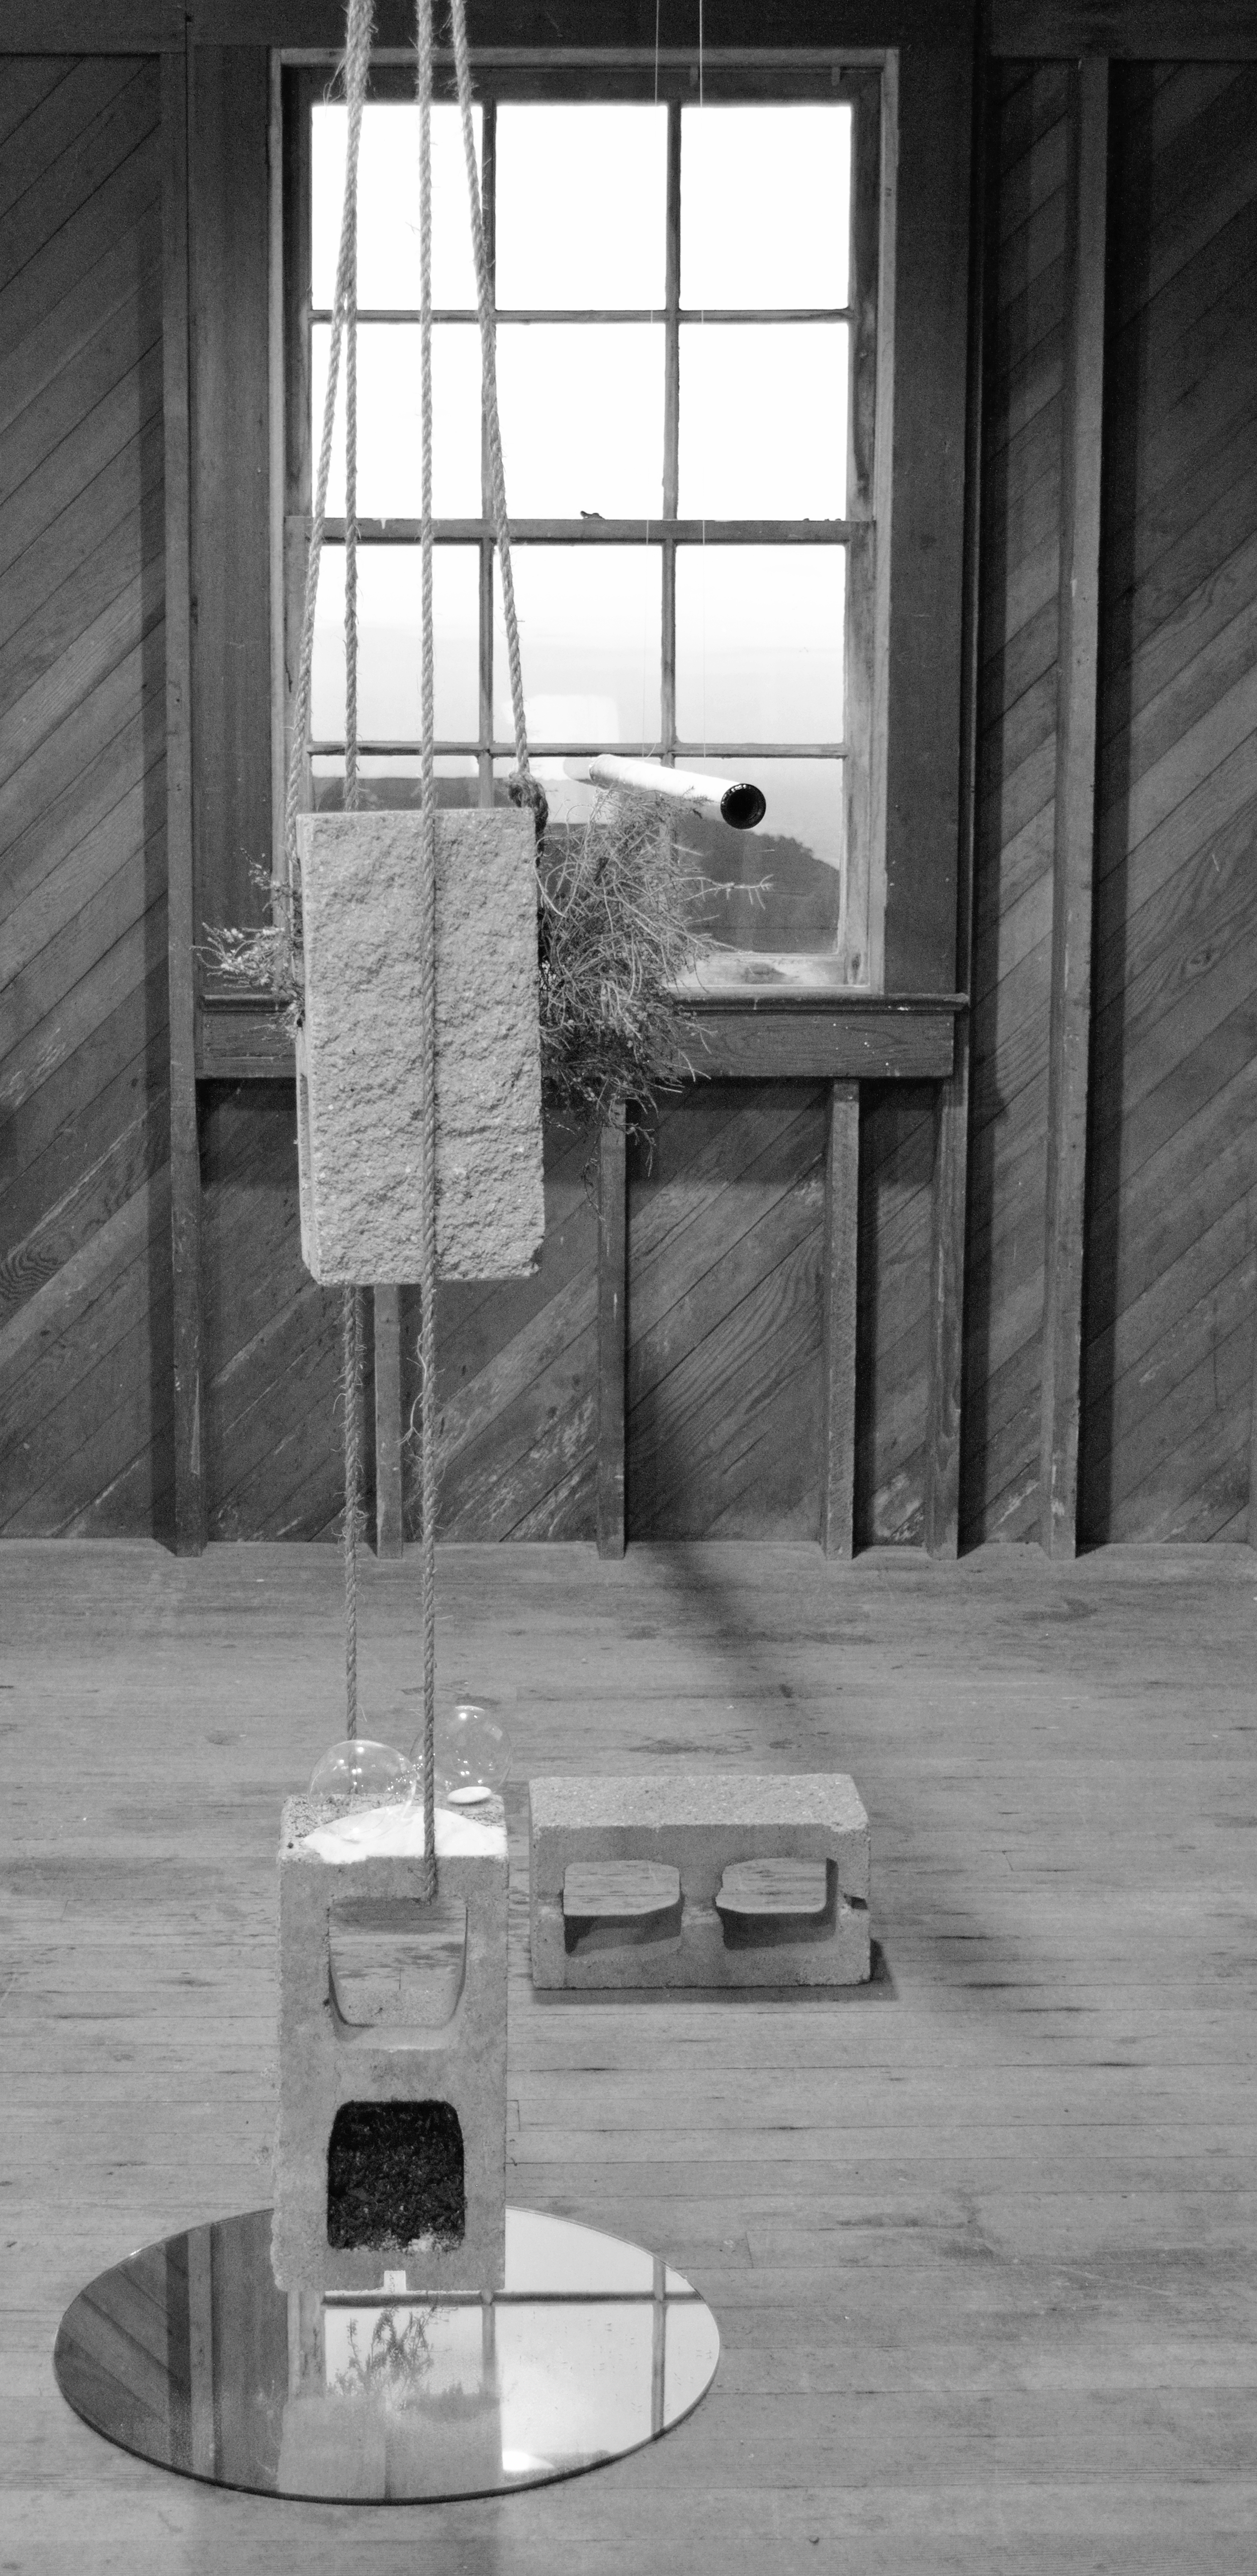 Ghost hills (Erica x darleyensis) , 2014, Studio Installation view.  concrete blocks, mirror, heather plants, soil, manilla rope, cardboard, hourglass, graphite, metal leaf, gesso, repurposed plastic, fishing line. Headlands Center for the Arts, Spring Open House 2014, Sausalito, CA